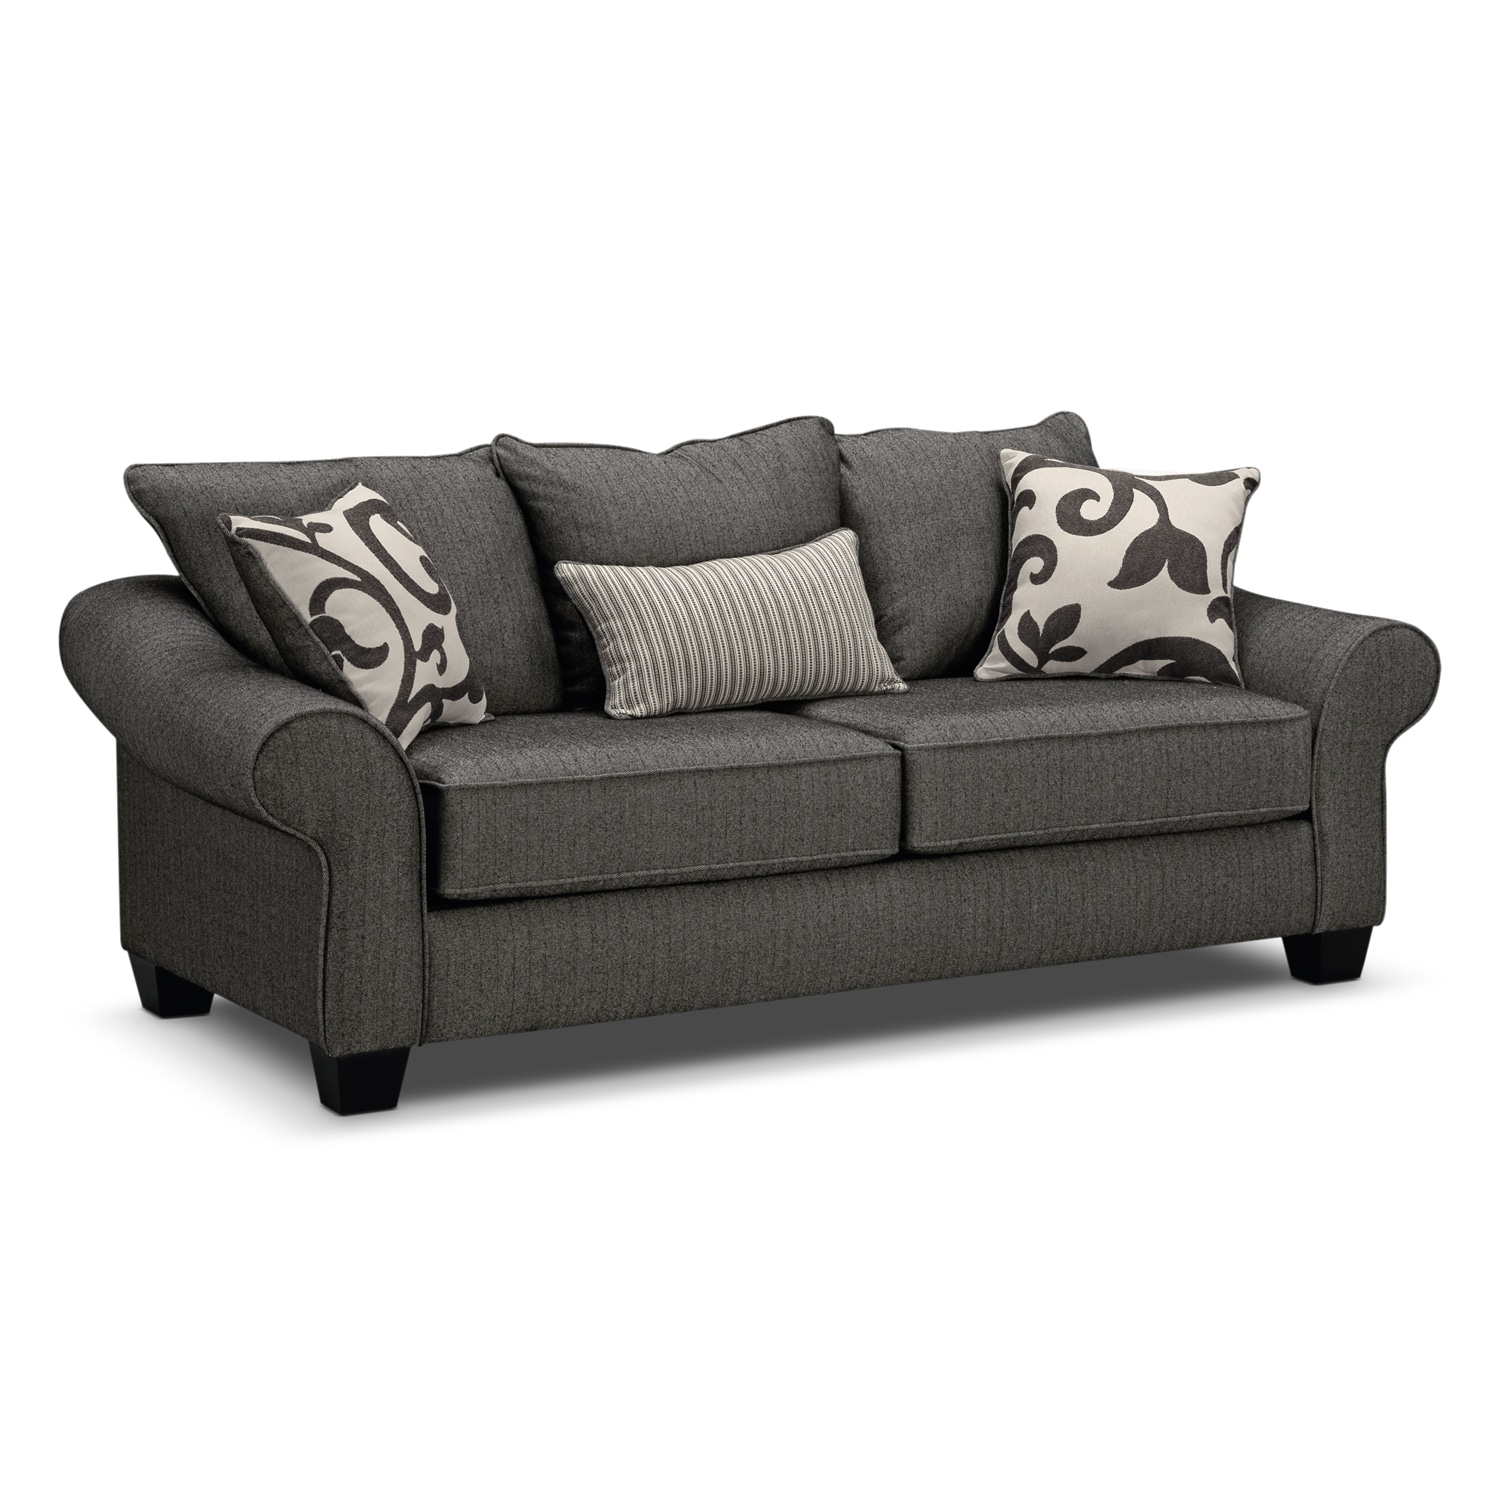 Colette gray sofa value city furniture for Furniture sofas and couches